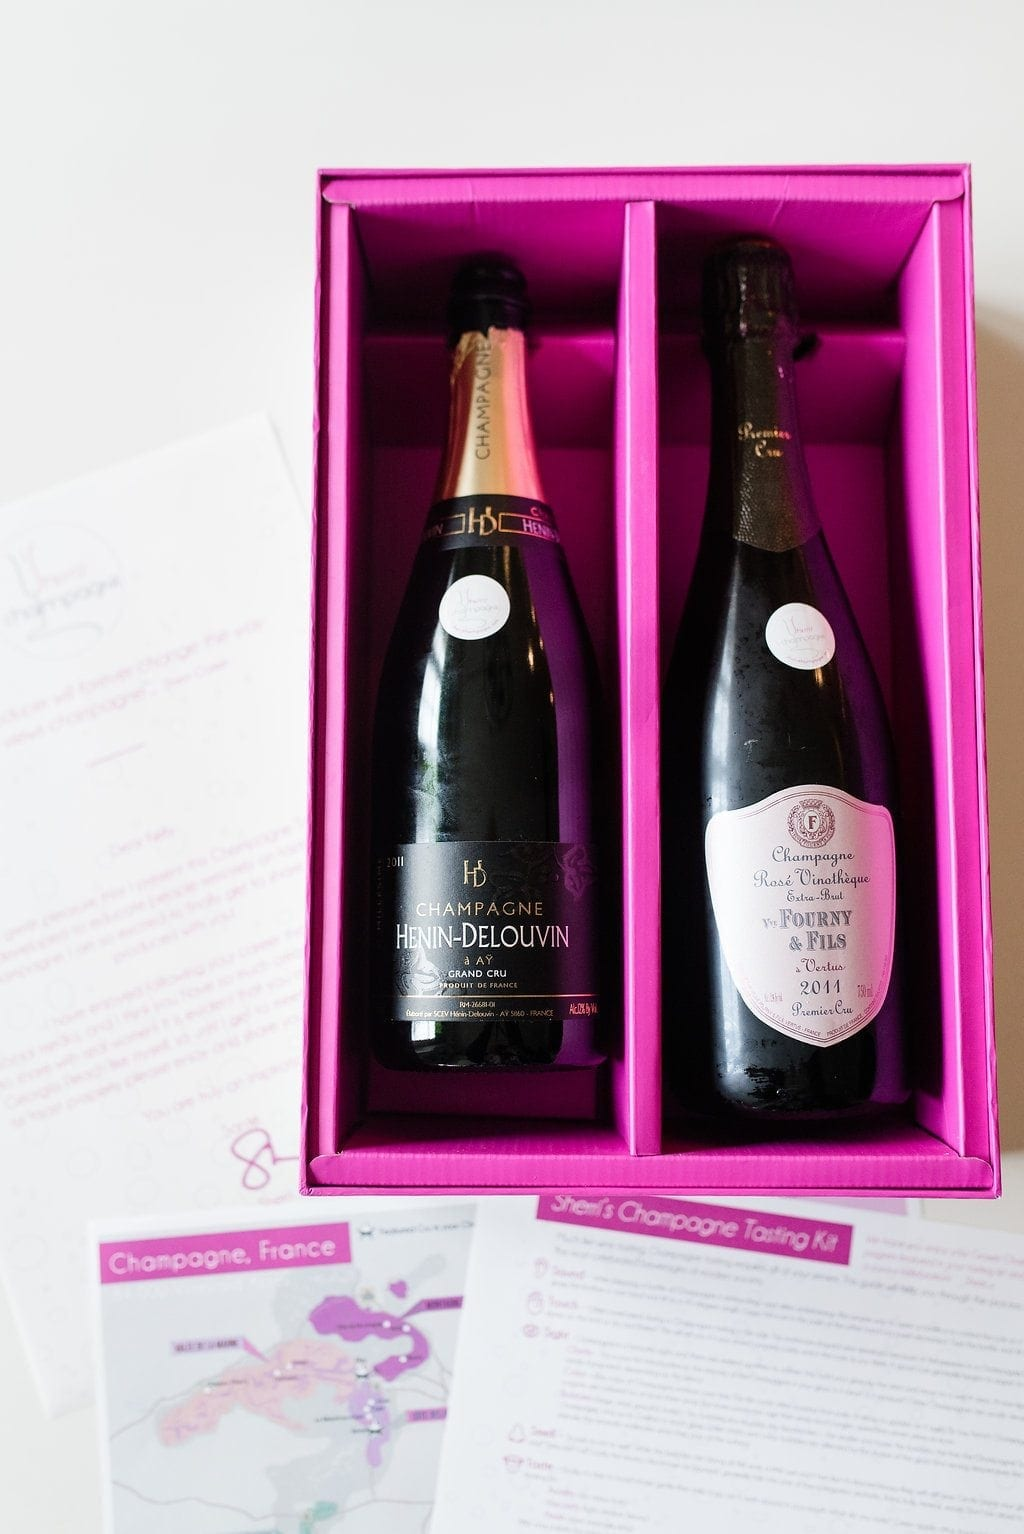 perfect gift for the champagne lover!